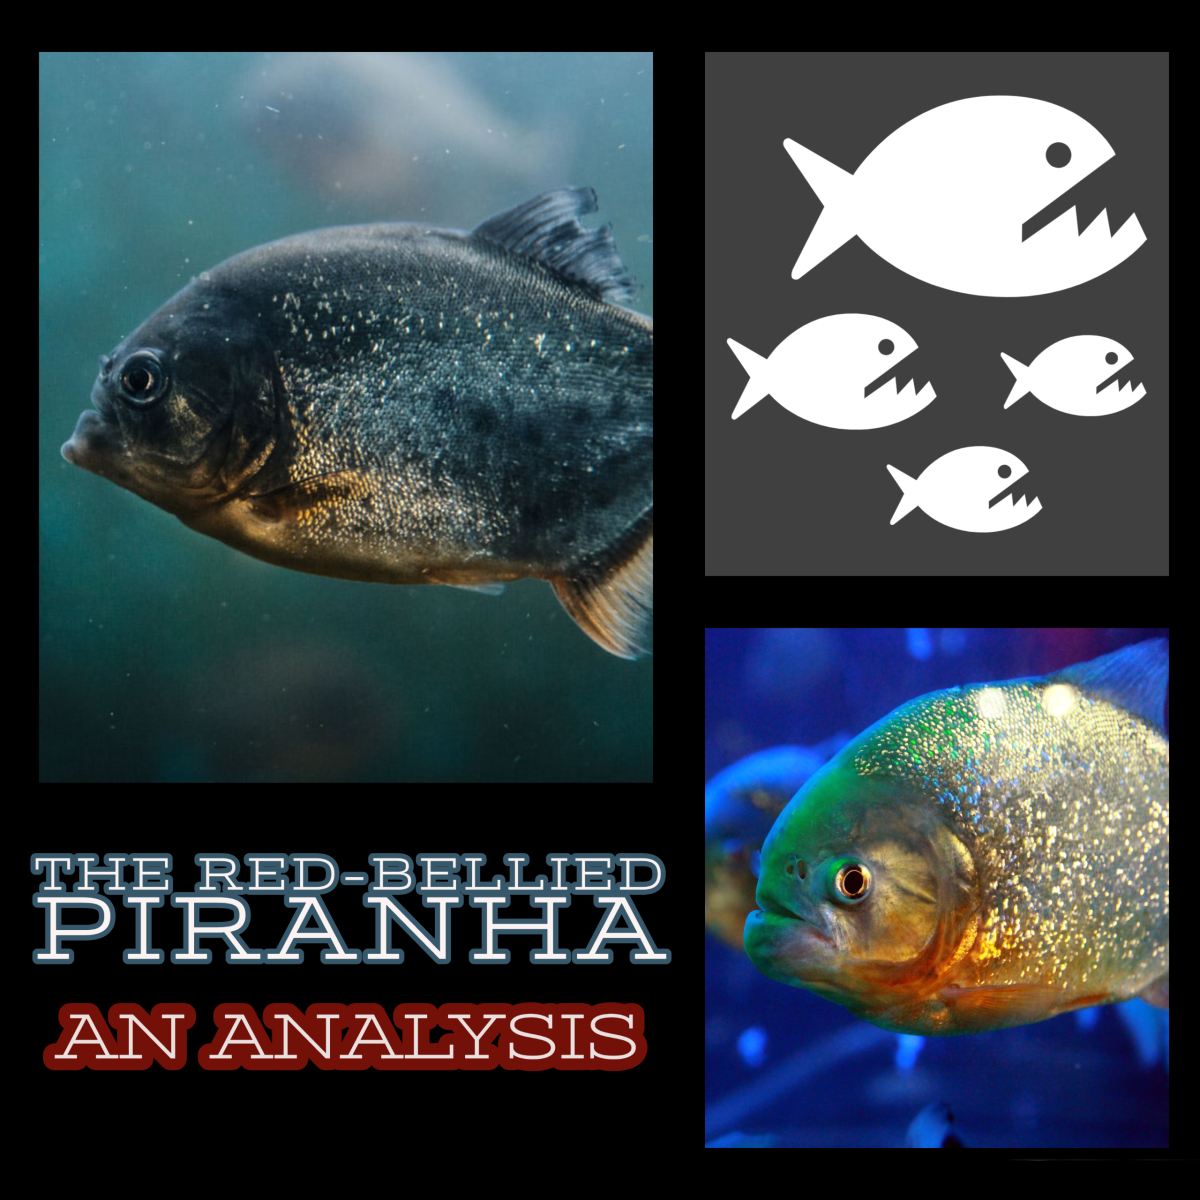 The Red-Bellied Piranha: An Analysis